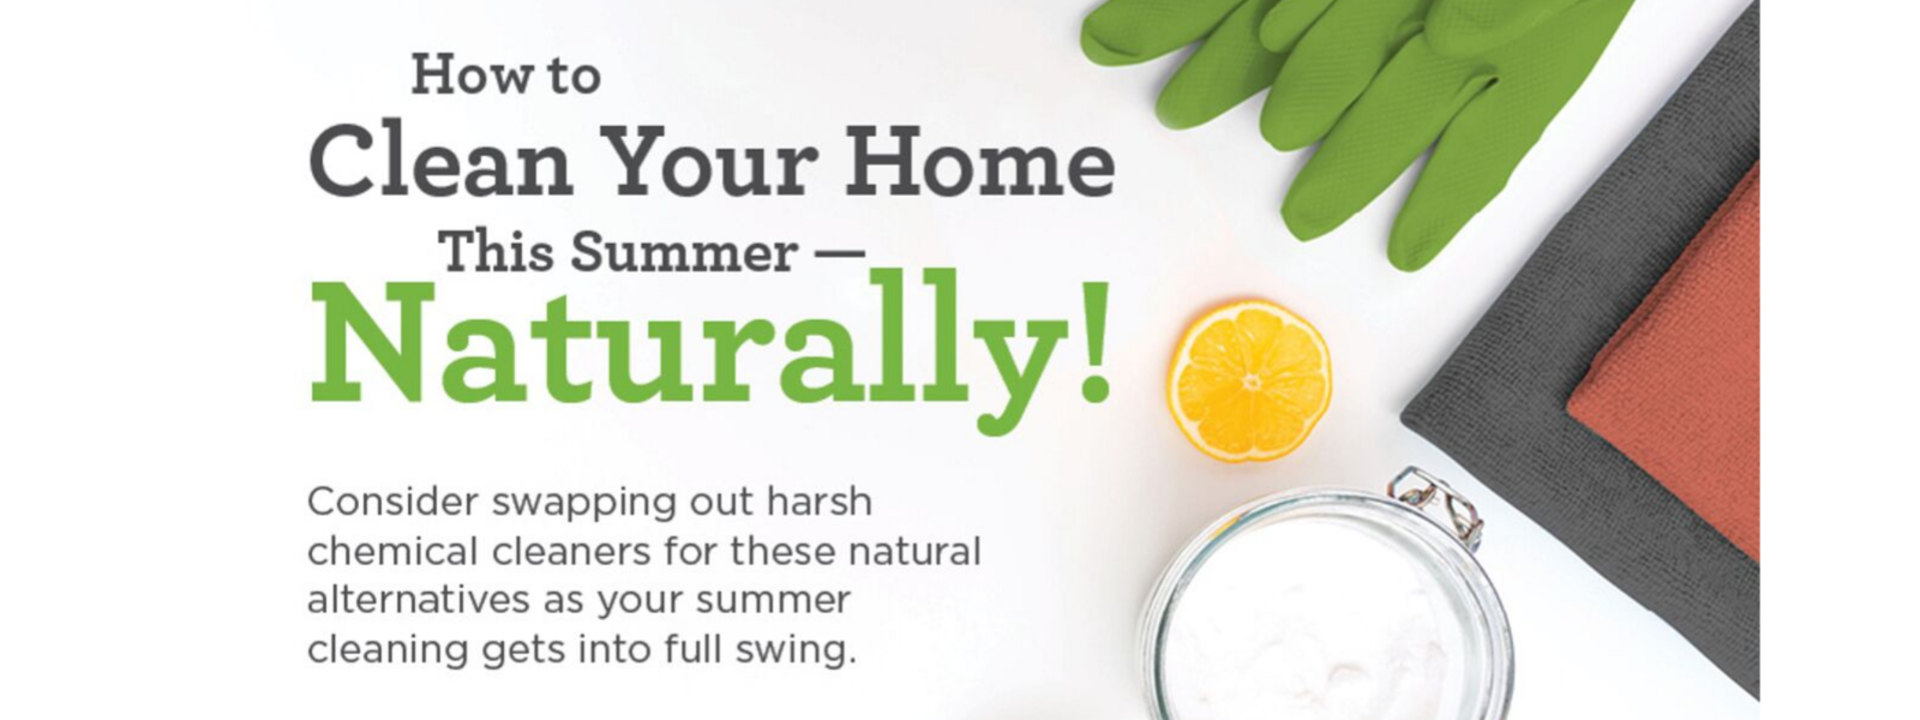 How to Clean Your Home Naturally!